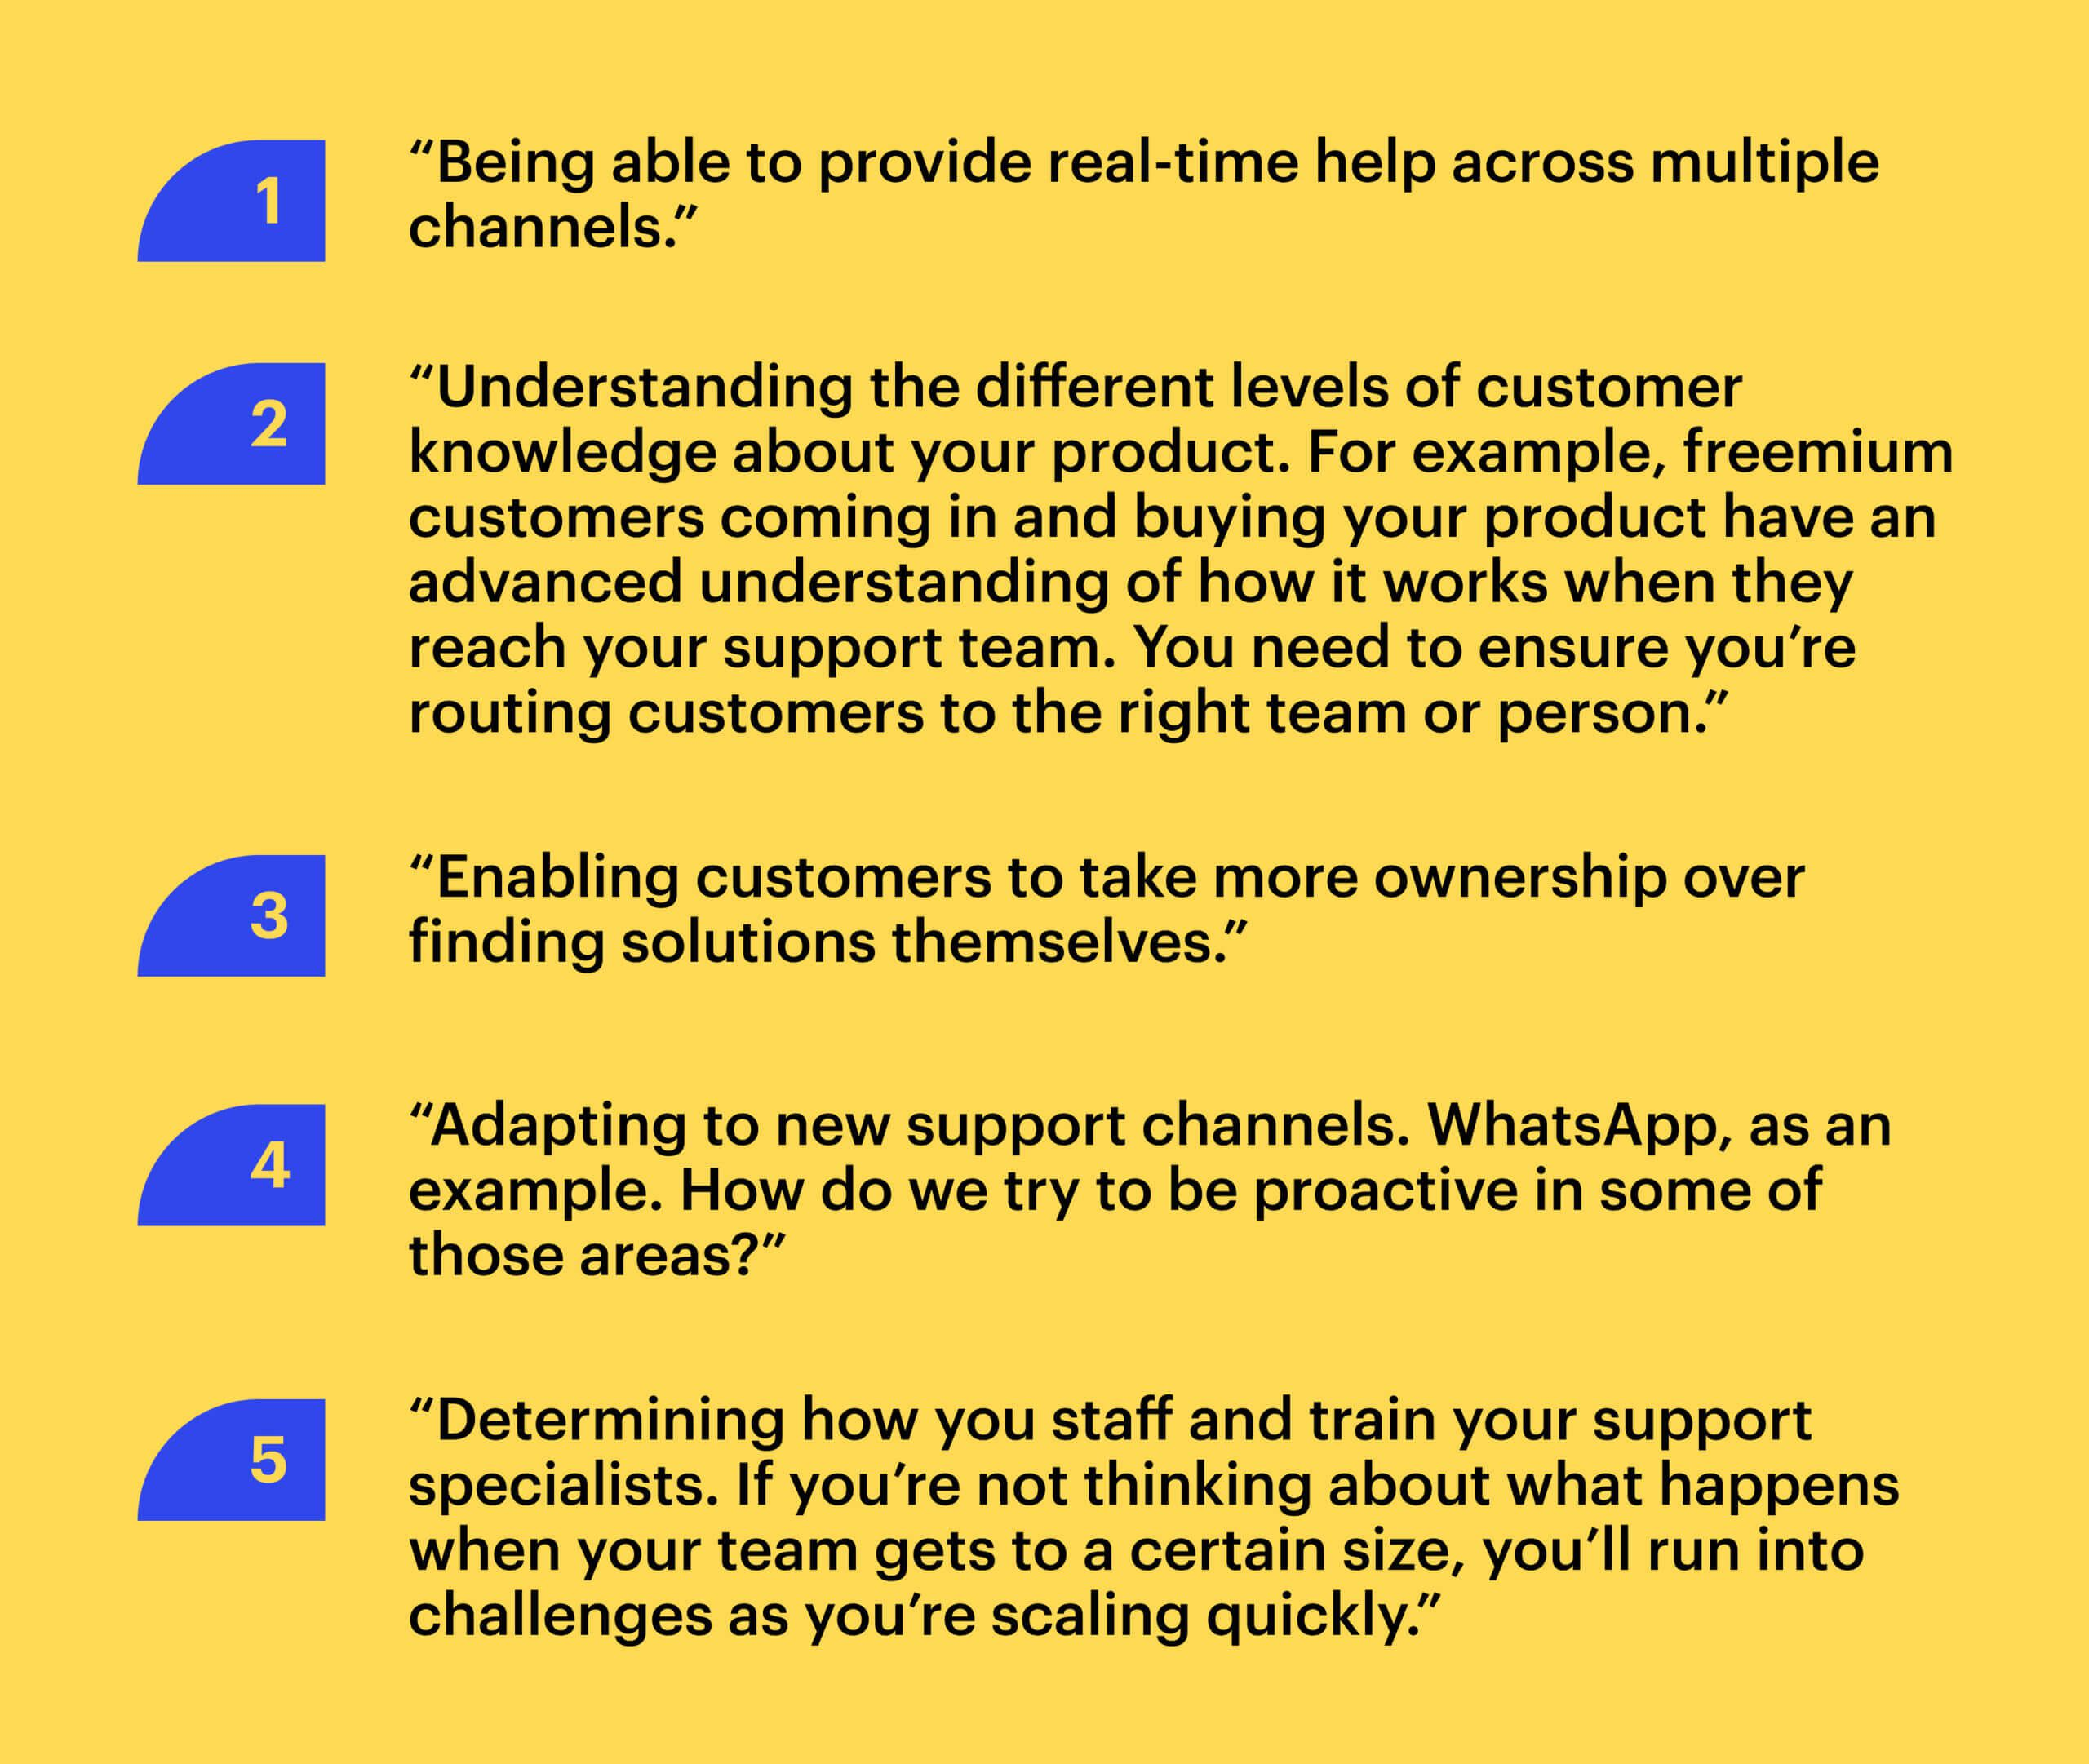 """Quote from Jean-Bernard Baptiste: """"1. """"Being able to provide real-time help across multiple channels."""" 2. """"Understanding the different levels of customer knowledge about your product. For example, freemium customers coming in and buying your product have an advanced understanding of how it works when they reach your support team. You need to ensure you're routing customers to the right team or person."""" 3. """"Enabling customers to take more ownership over finding solutions themselves."""" 4. """"Adapting to new support channels. WhatsApp, as an example. How do we try to be proactive in some of those areas?"""" 5. """"Determining how you staff and train your support specialists. If you're not thinking about what happens when your team gets to a certain size, you'll run into challenges as you're scaling quickly."""""""